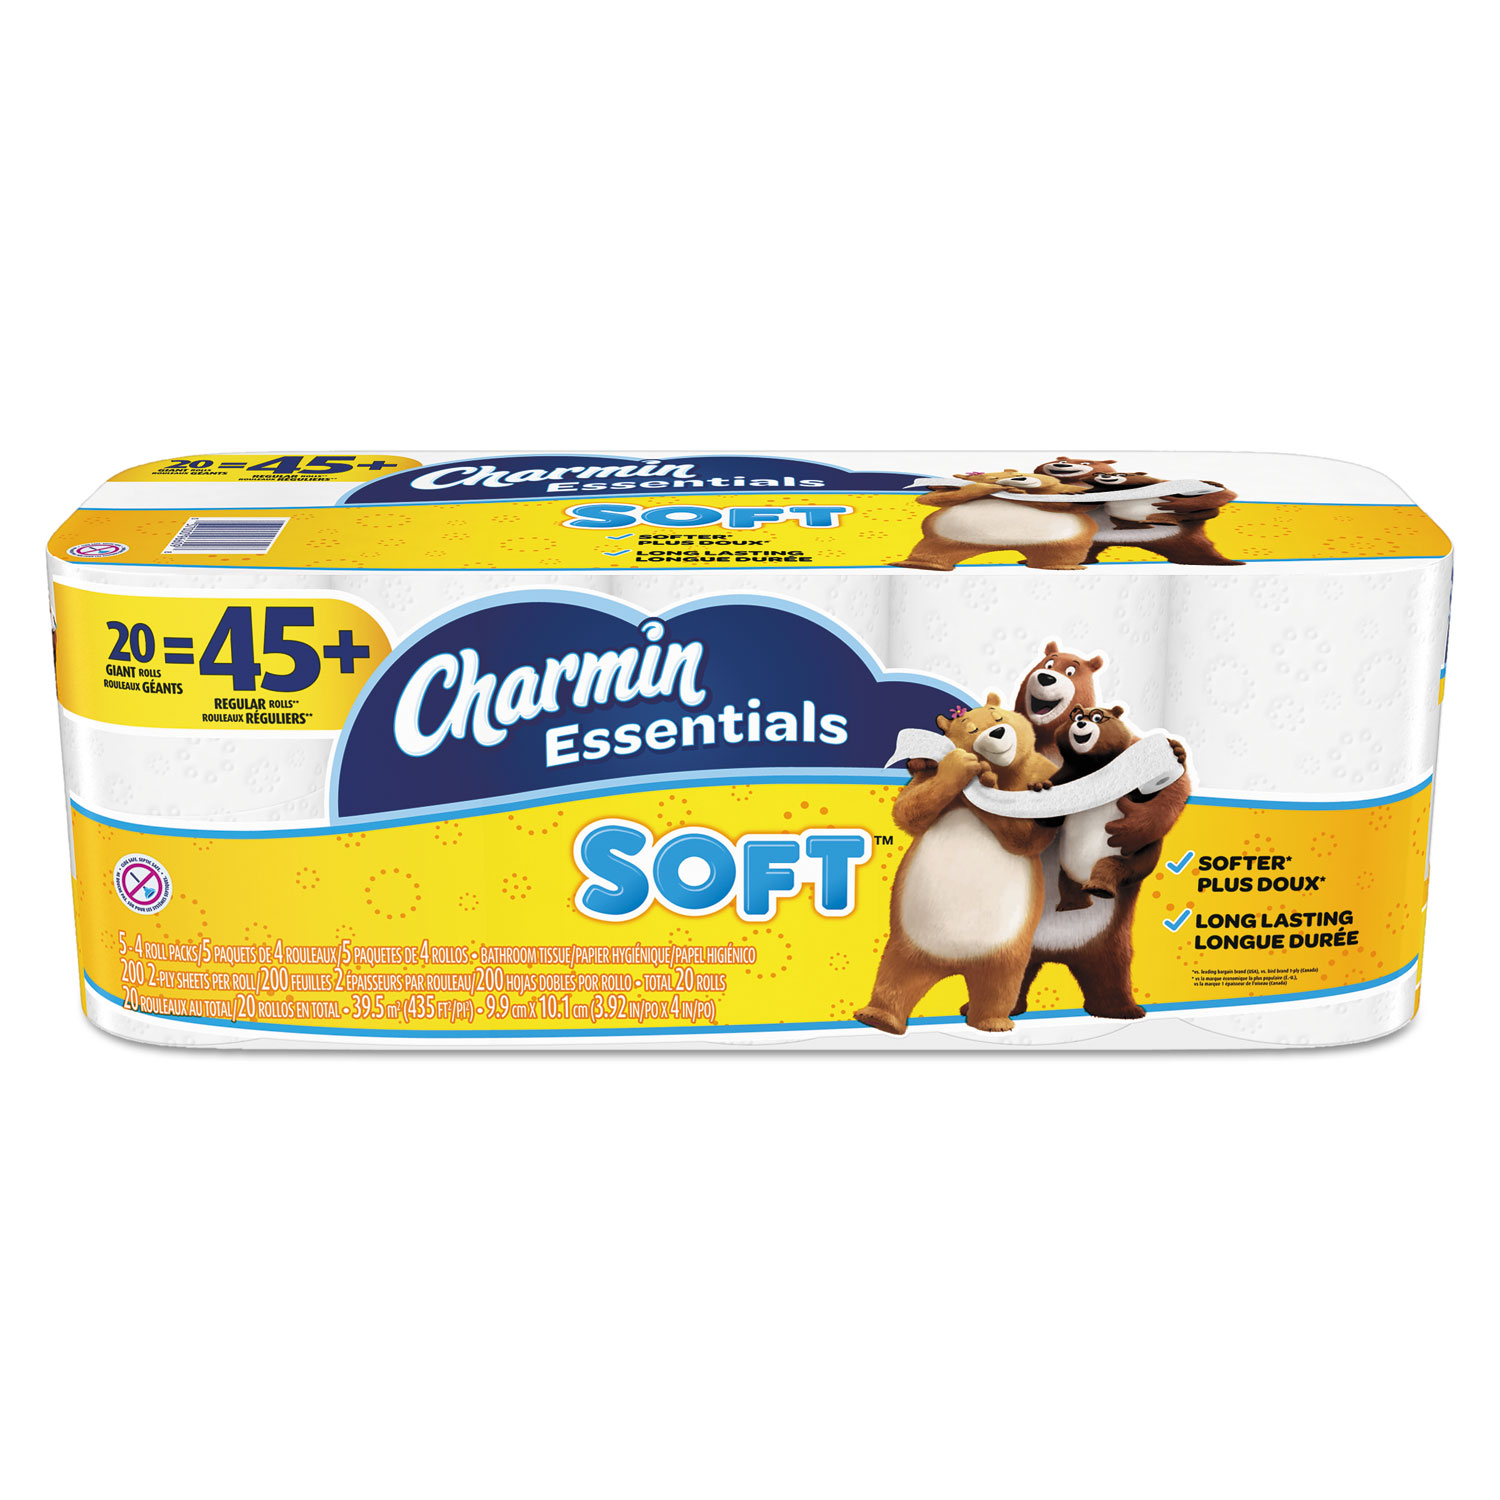 Essentials Soft Bathroom Tissue, Septic Safe, 2-Ply, White, 4 x 3.92, 200/Roll, 20 Roll/Pack